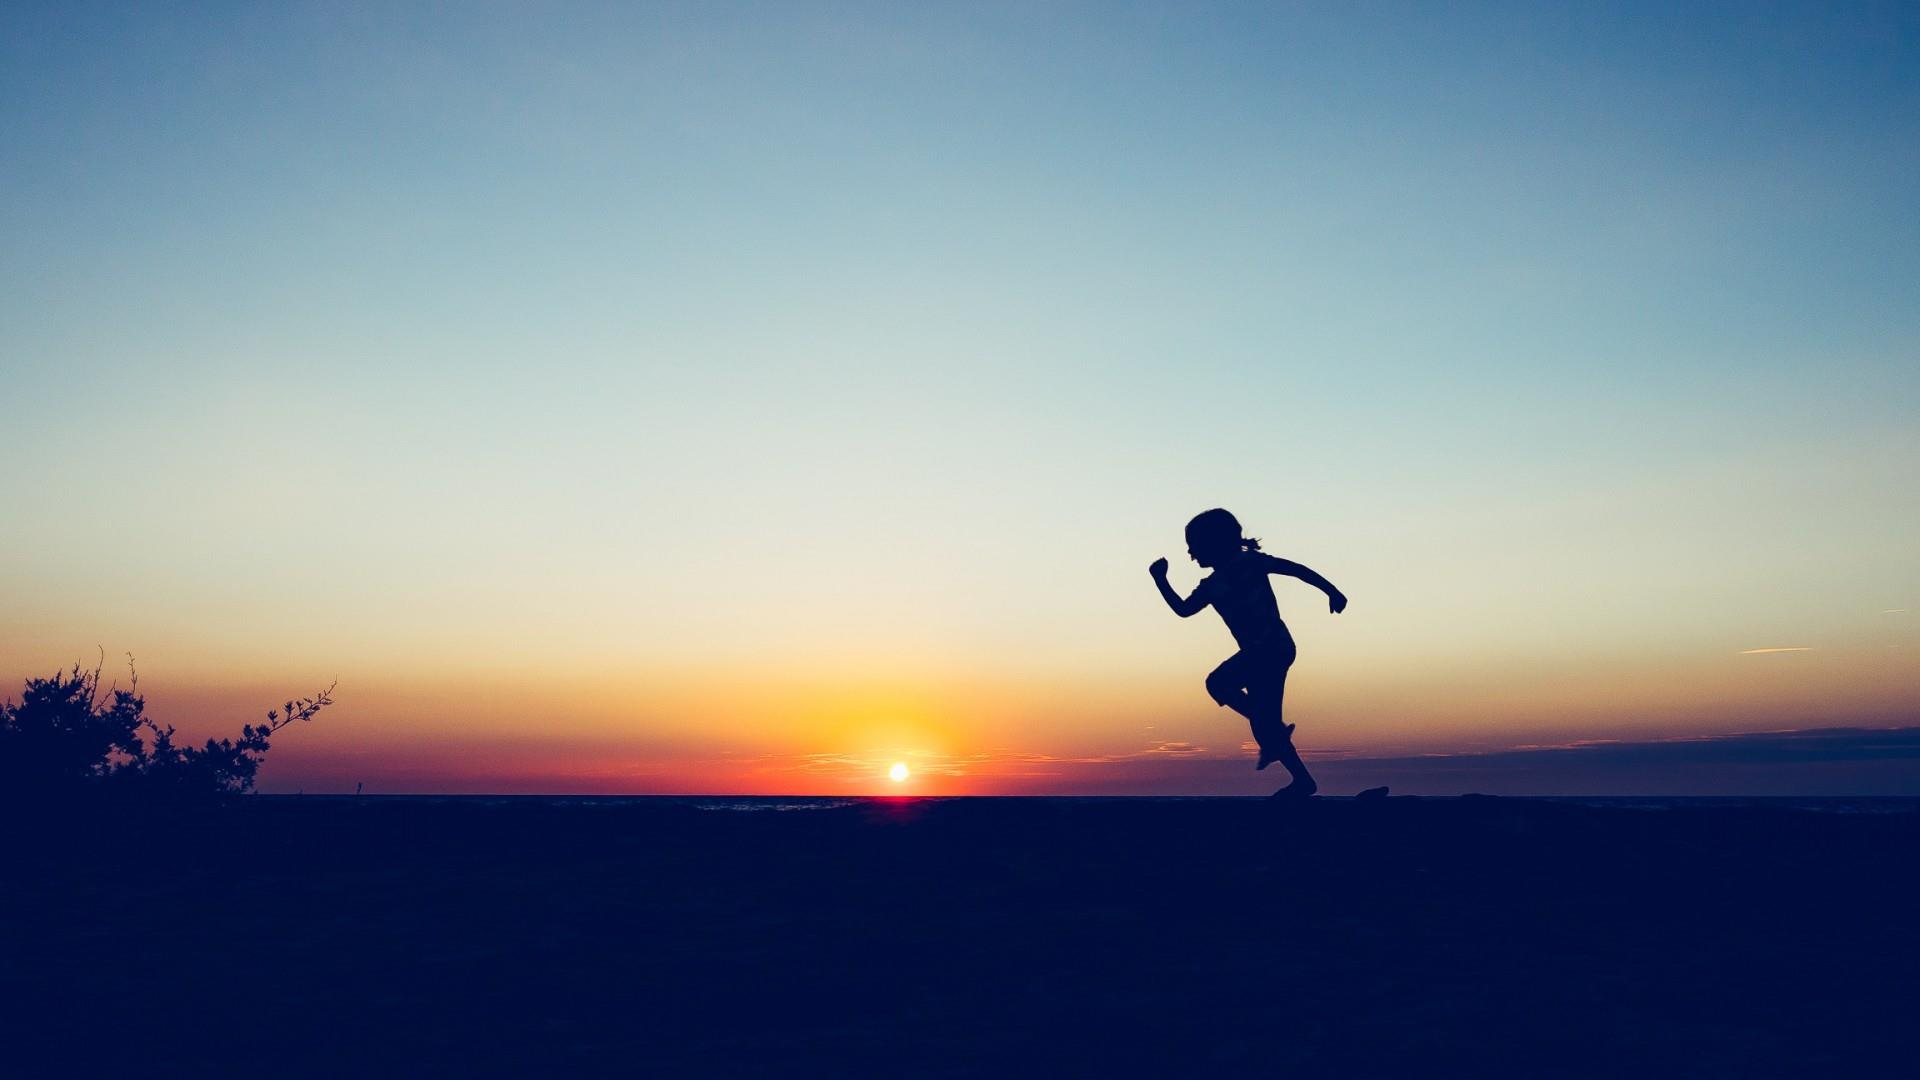 Jumping girl silhouette in the sunset wallpaper